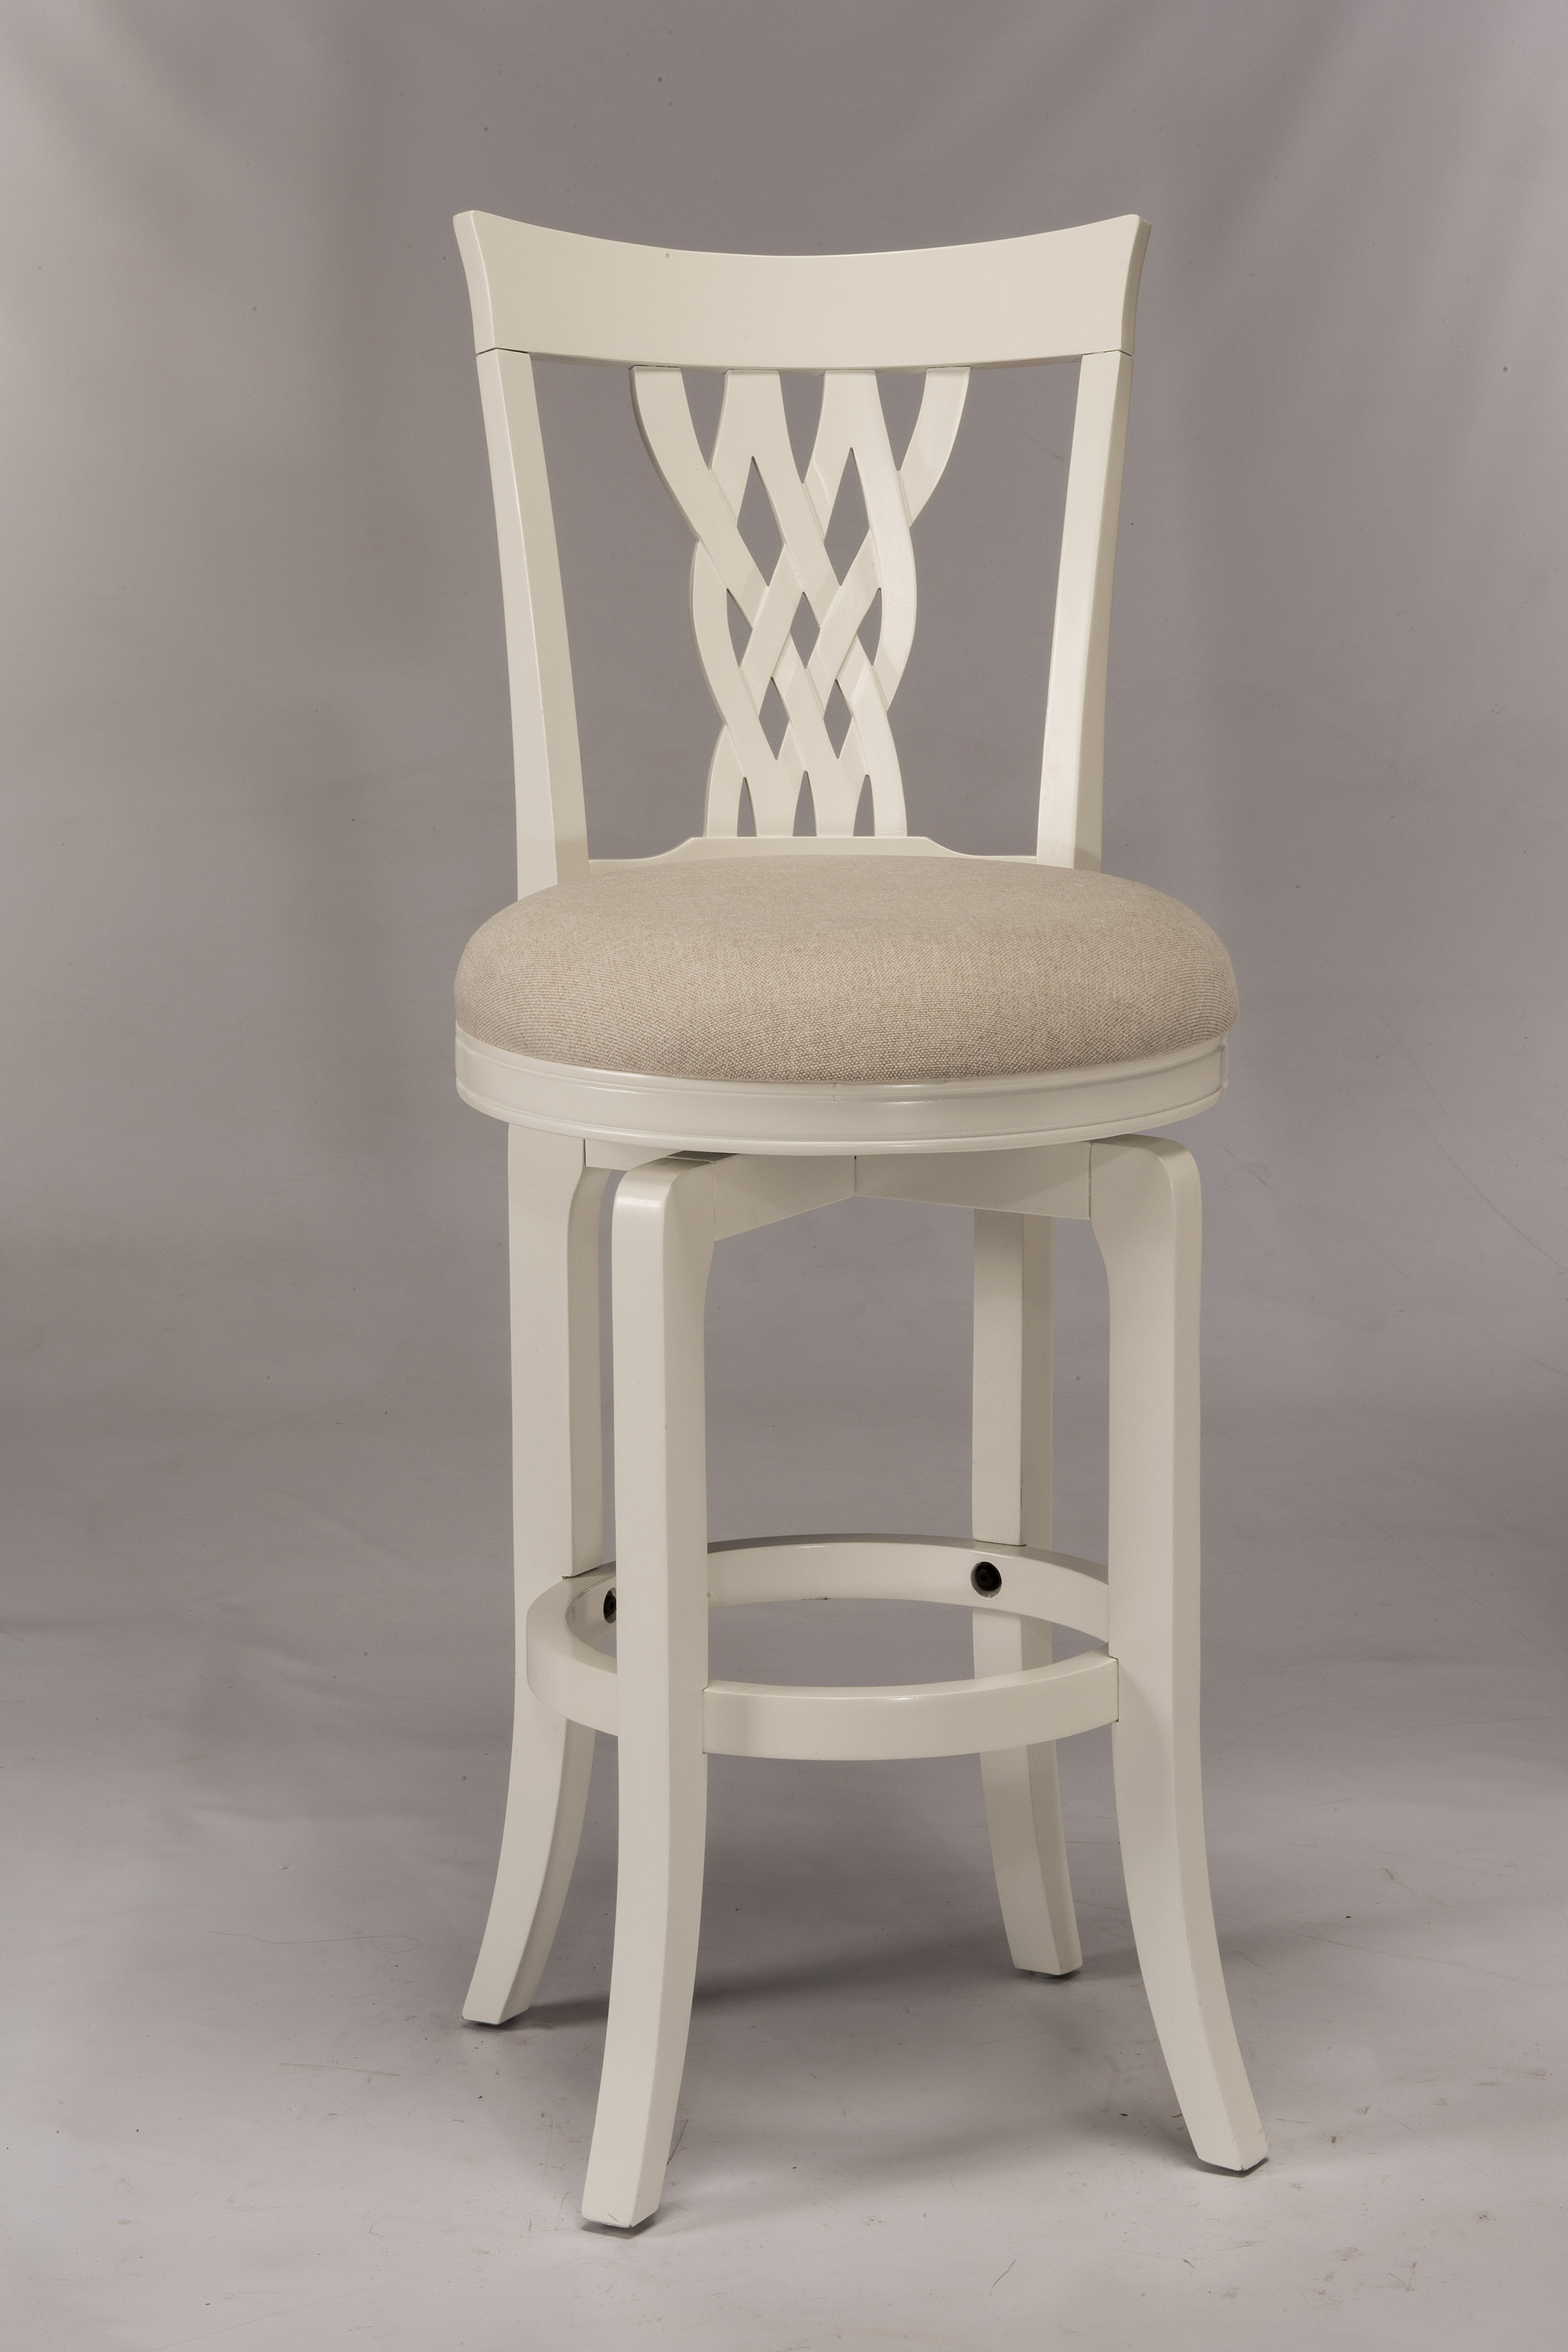 Hillsdale Wood Stools White Swiveling Bar Stool With